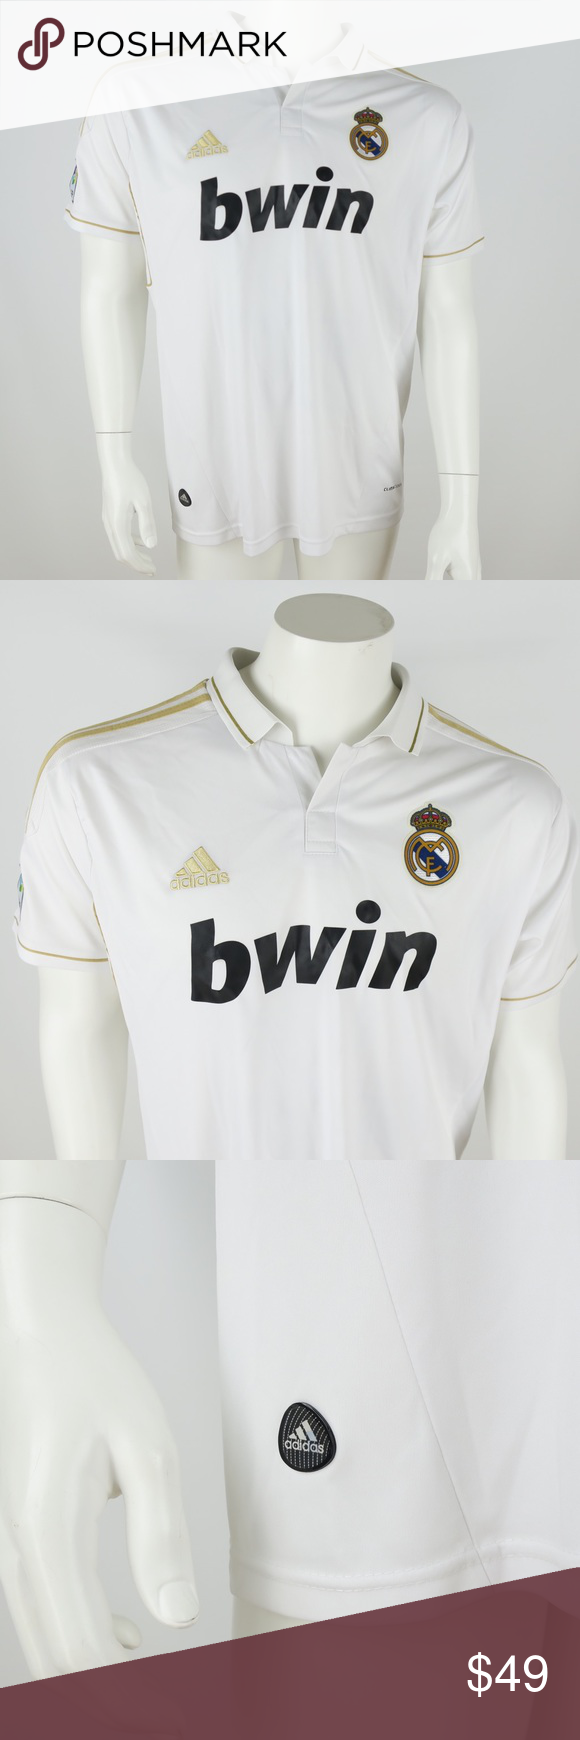 Adidas Real Madrid Polo Shirt Mens 7e296c2f8